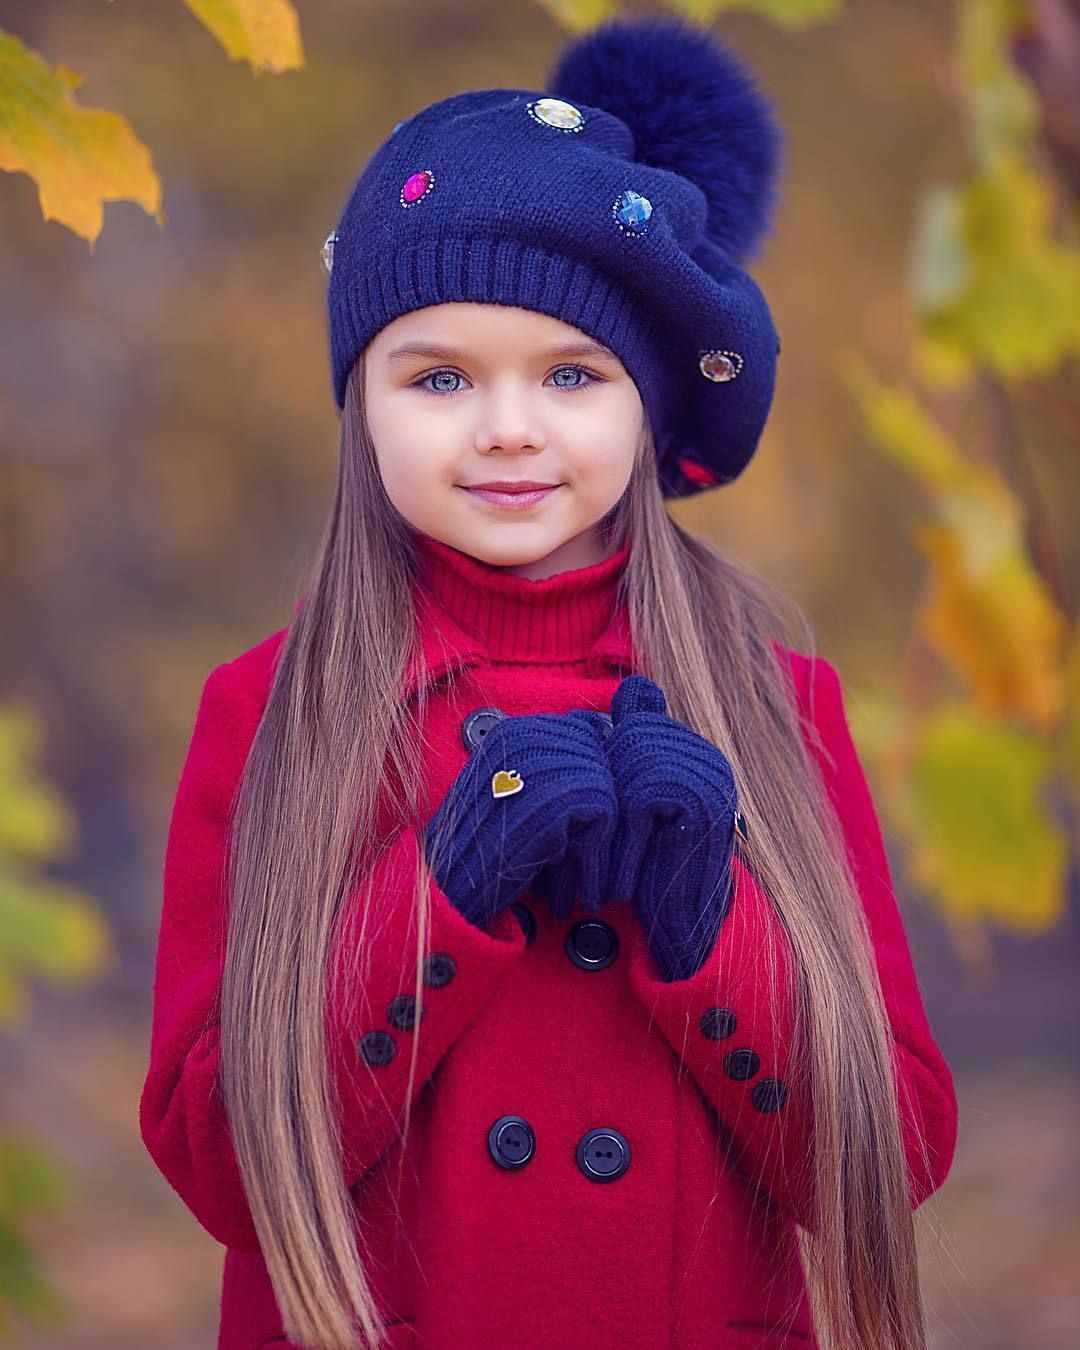 Meet The 6 Year Old Model Hailed As Most Beautiful Girl In The